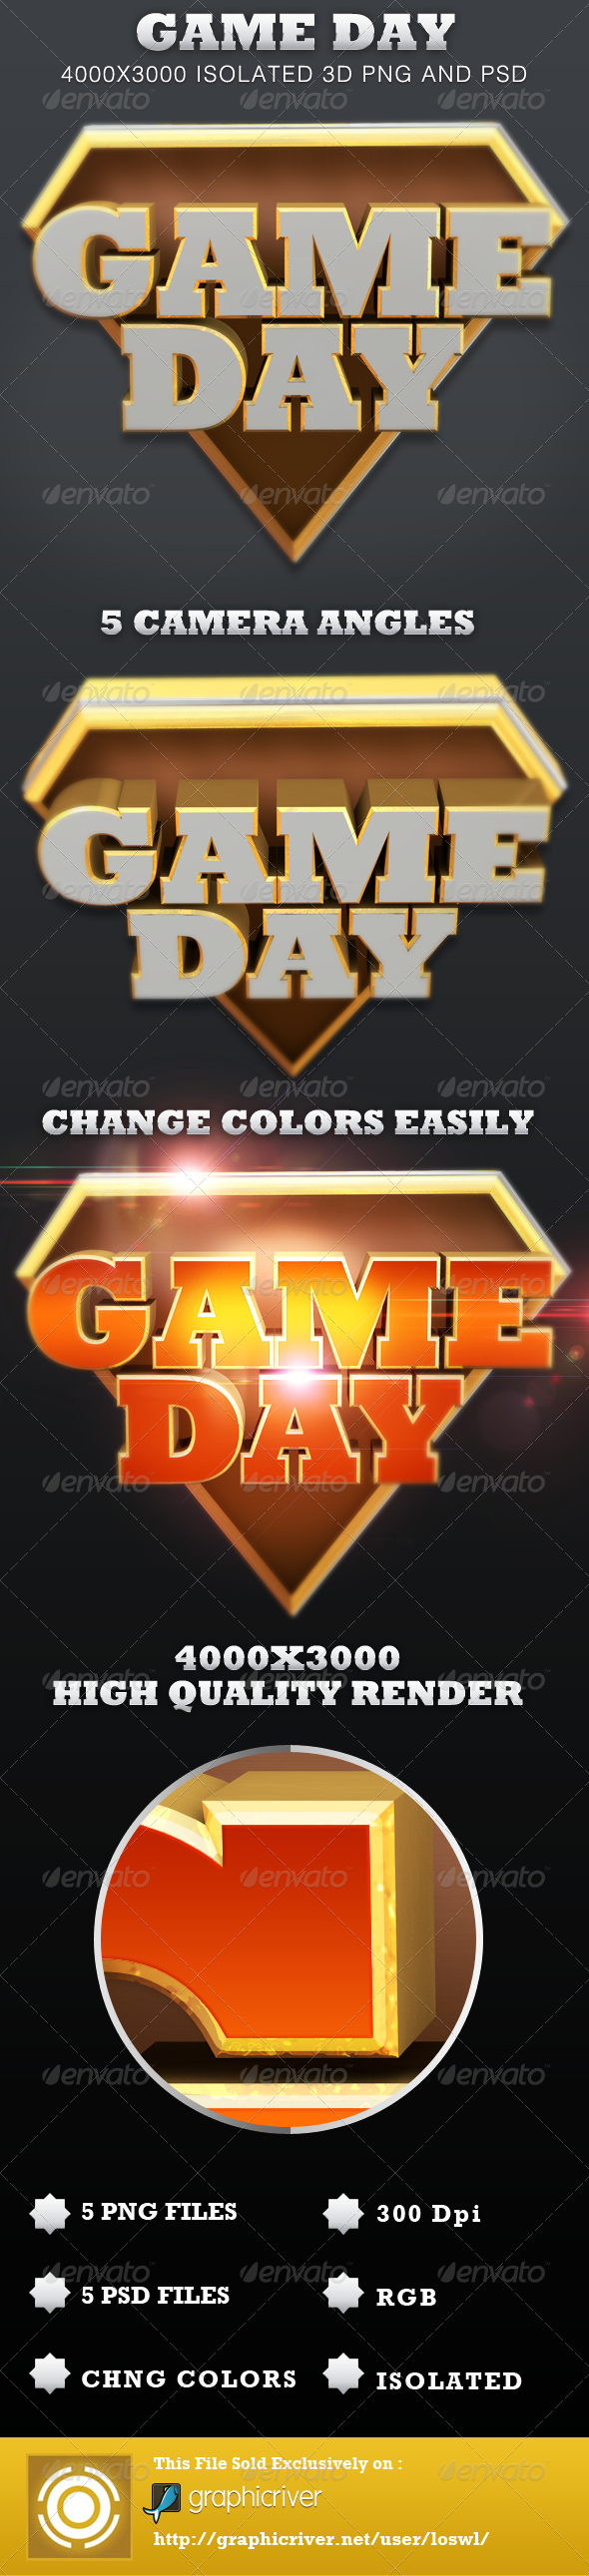 Game Day Isolated 3D Text Objects - Text 3D Renders